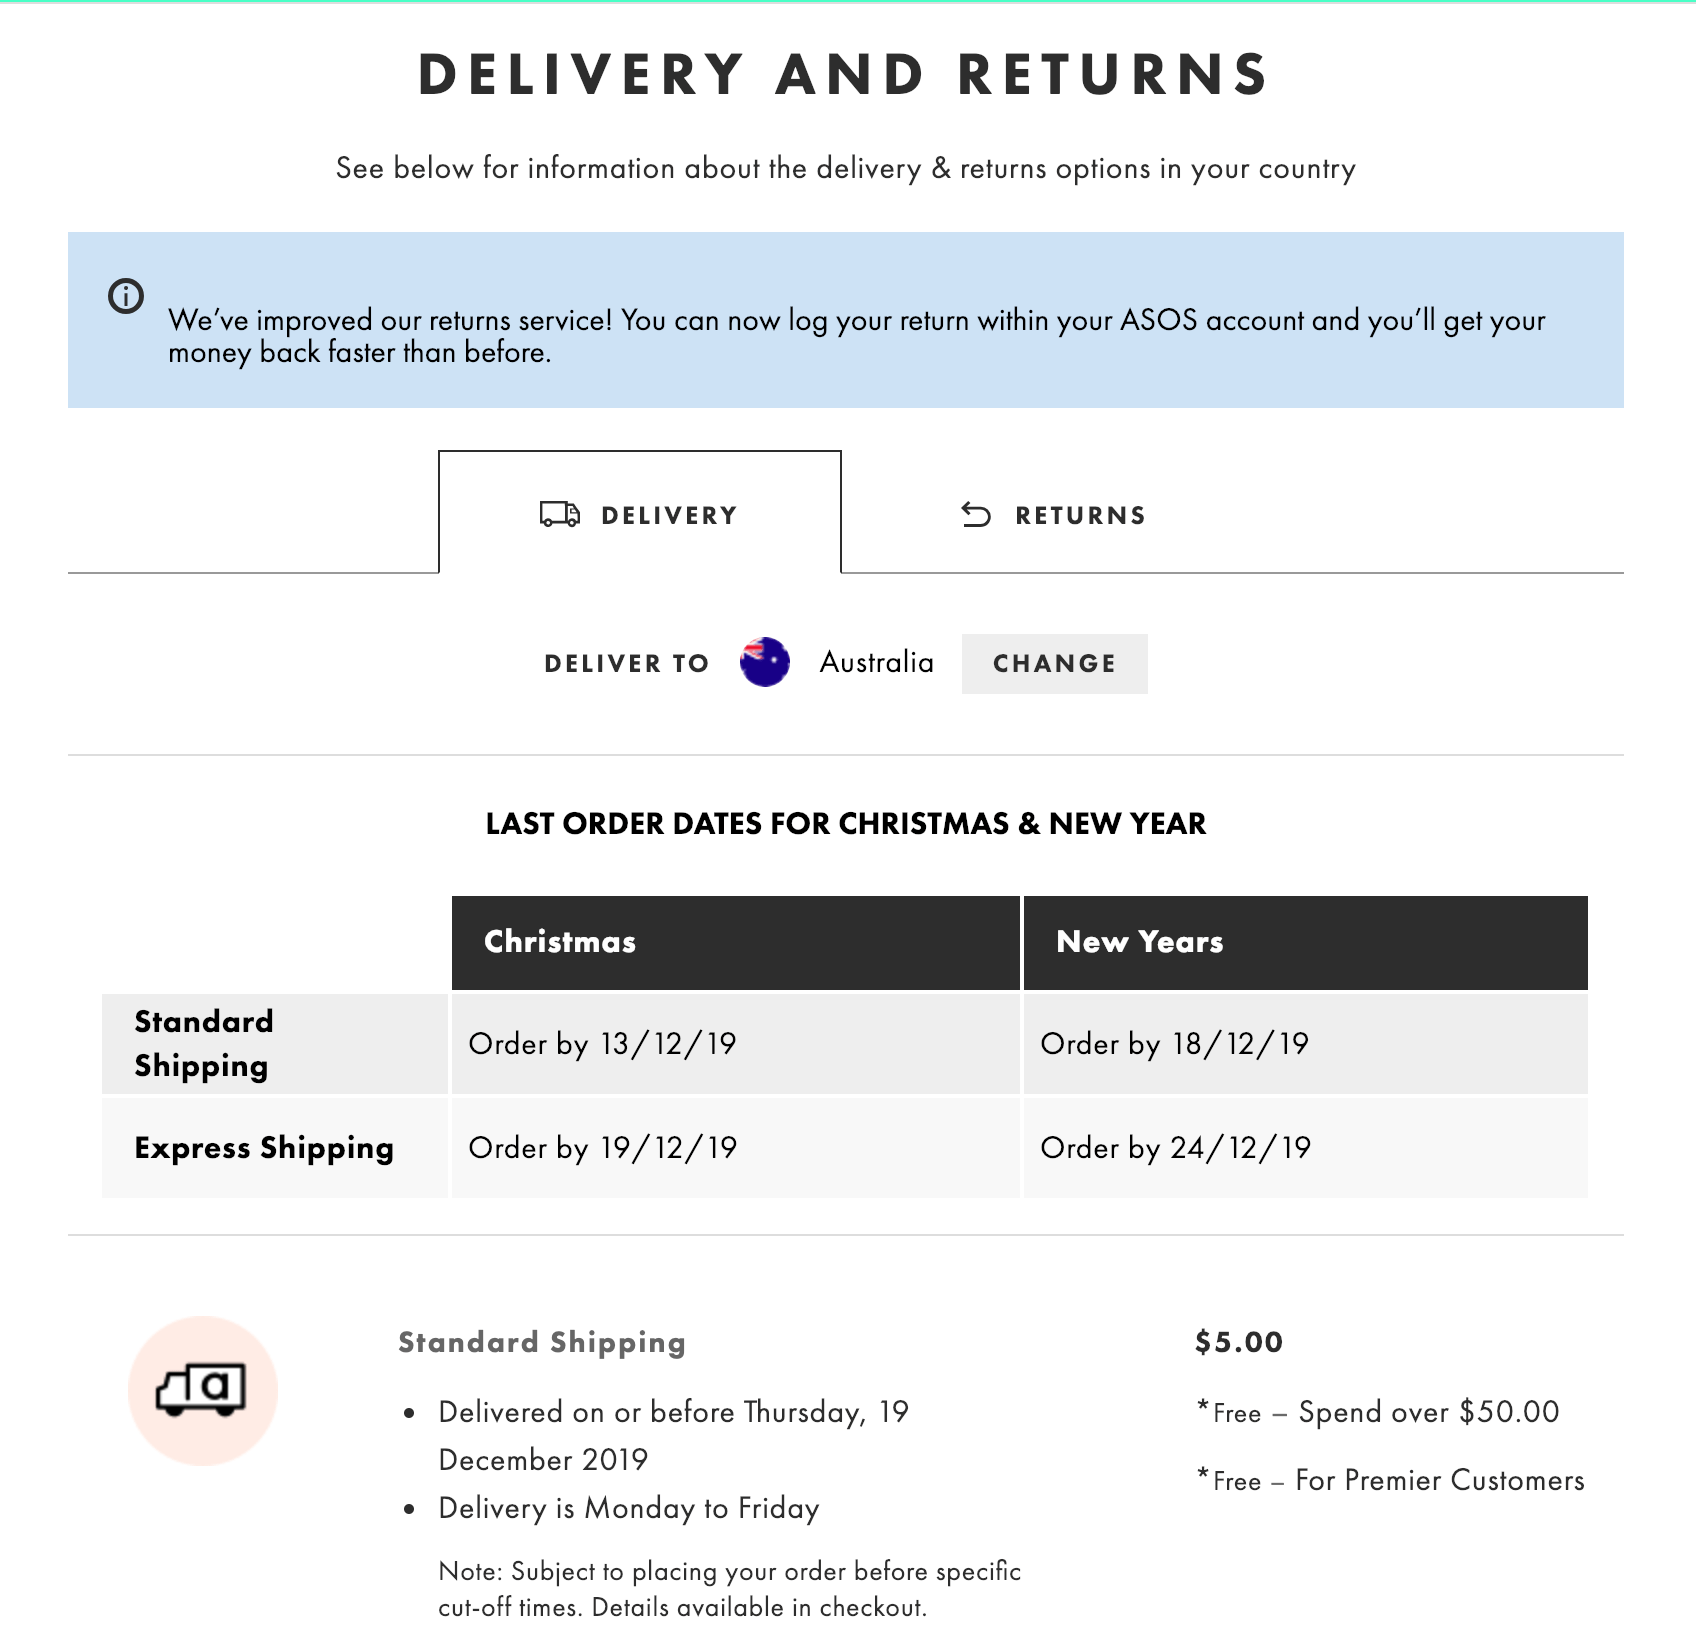 ASOS delivery and returns landing page